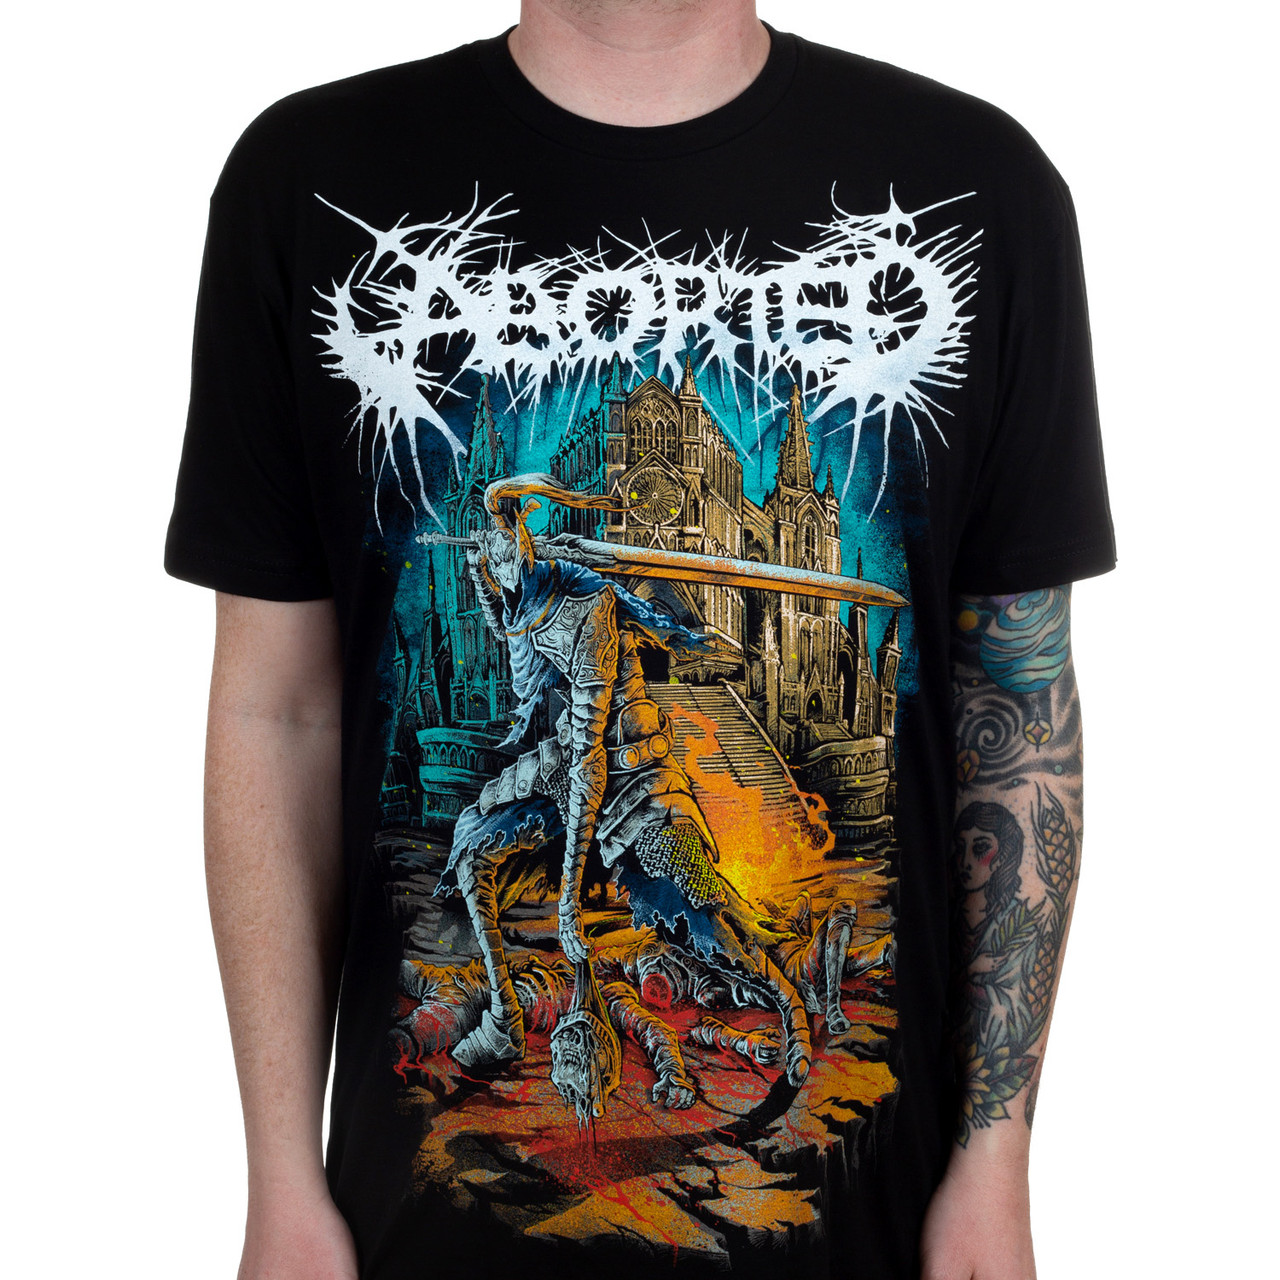 https://d3d71ba2asa5oz.cloudfront.net/12013655/images/56761%20aborted%20prepare%20to%20grind%20tee%20(2).jpg